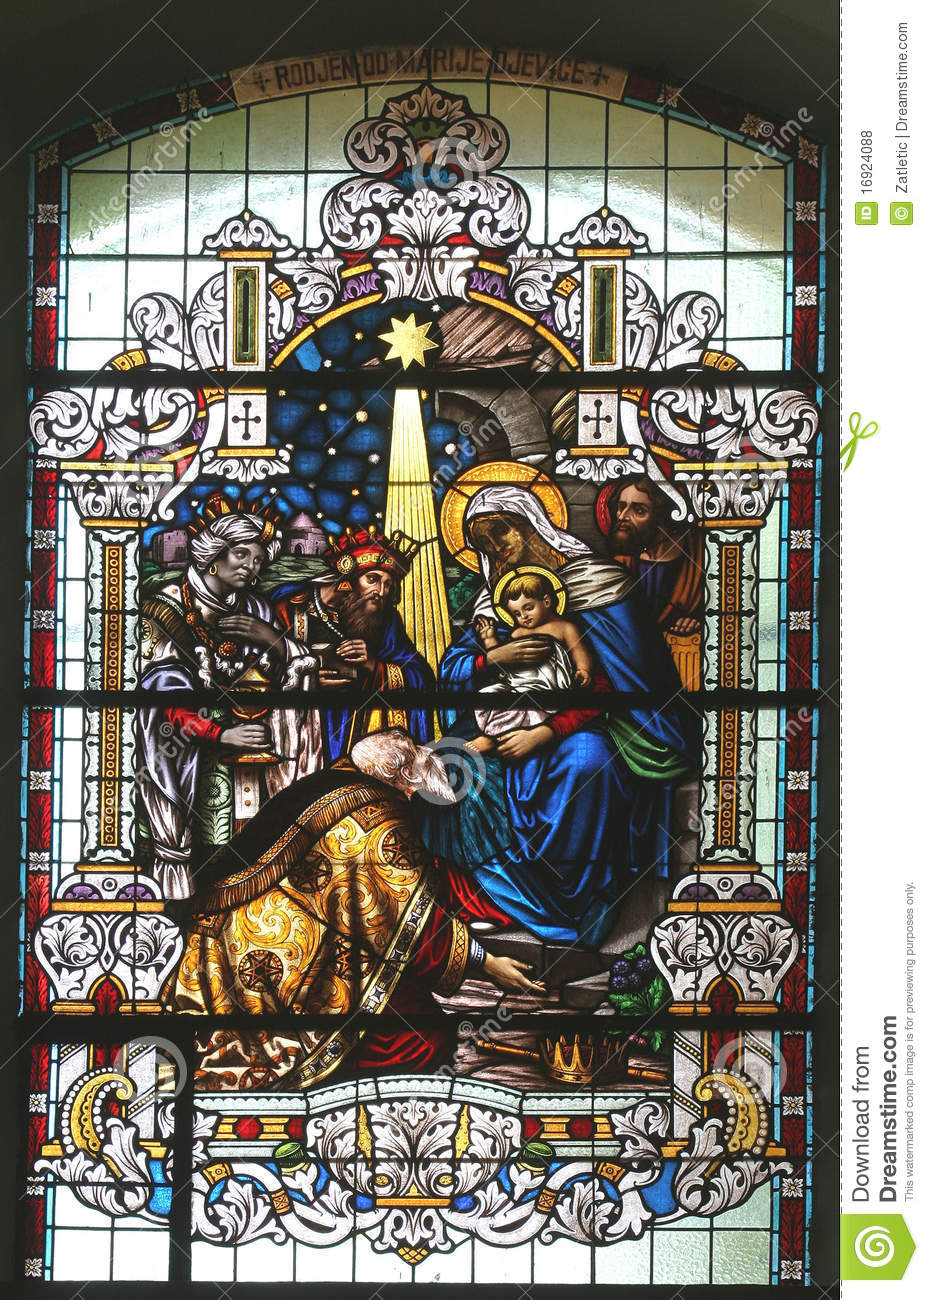 More similar stock images of ` Nativity Scene, Adoration of the Magi `